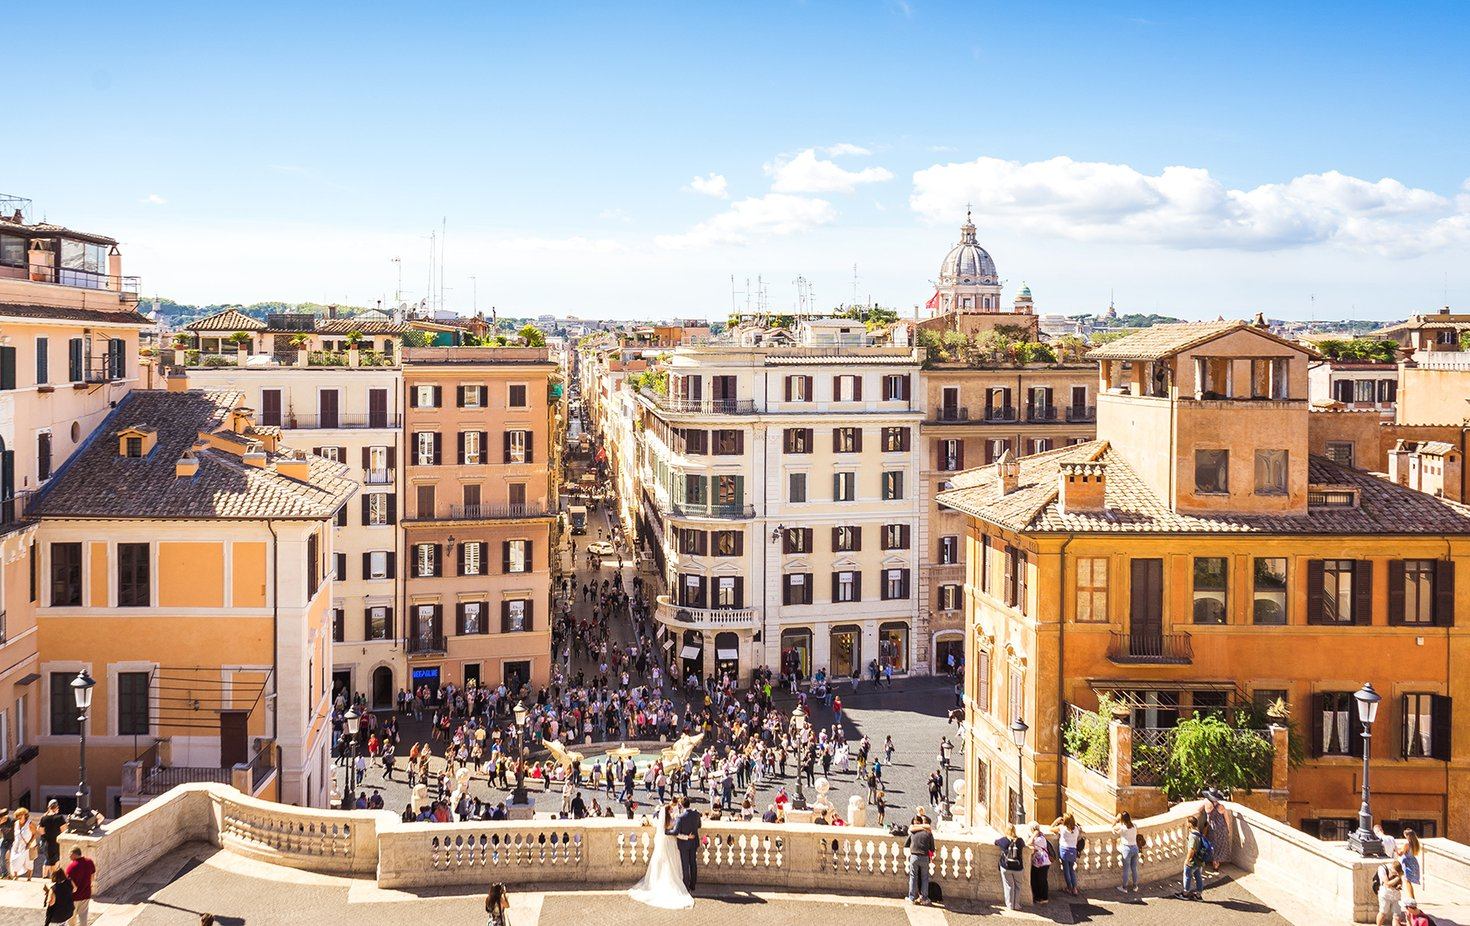 Shopping and Strolling through the Heart of Rome